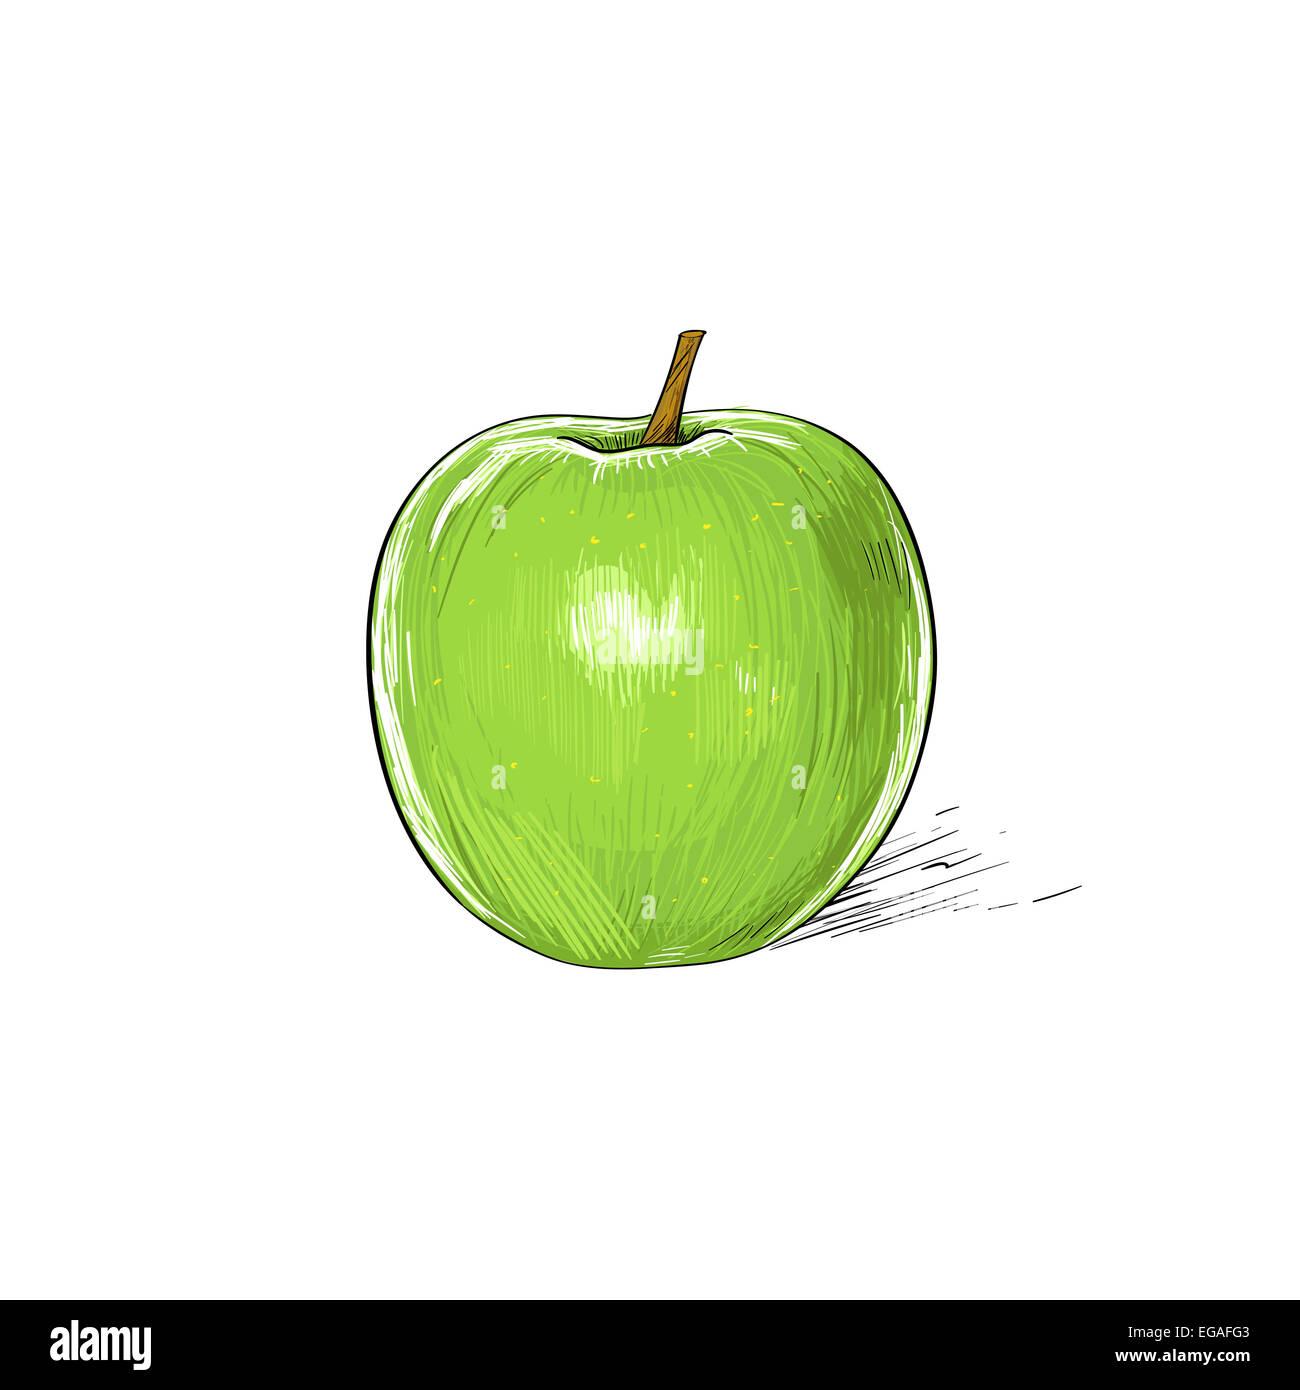 Green Apple Sketch Draw Isolated Over White Stock Photo 78907699